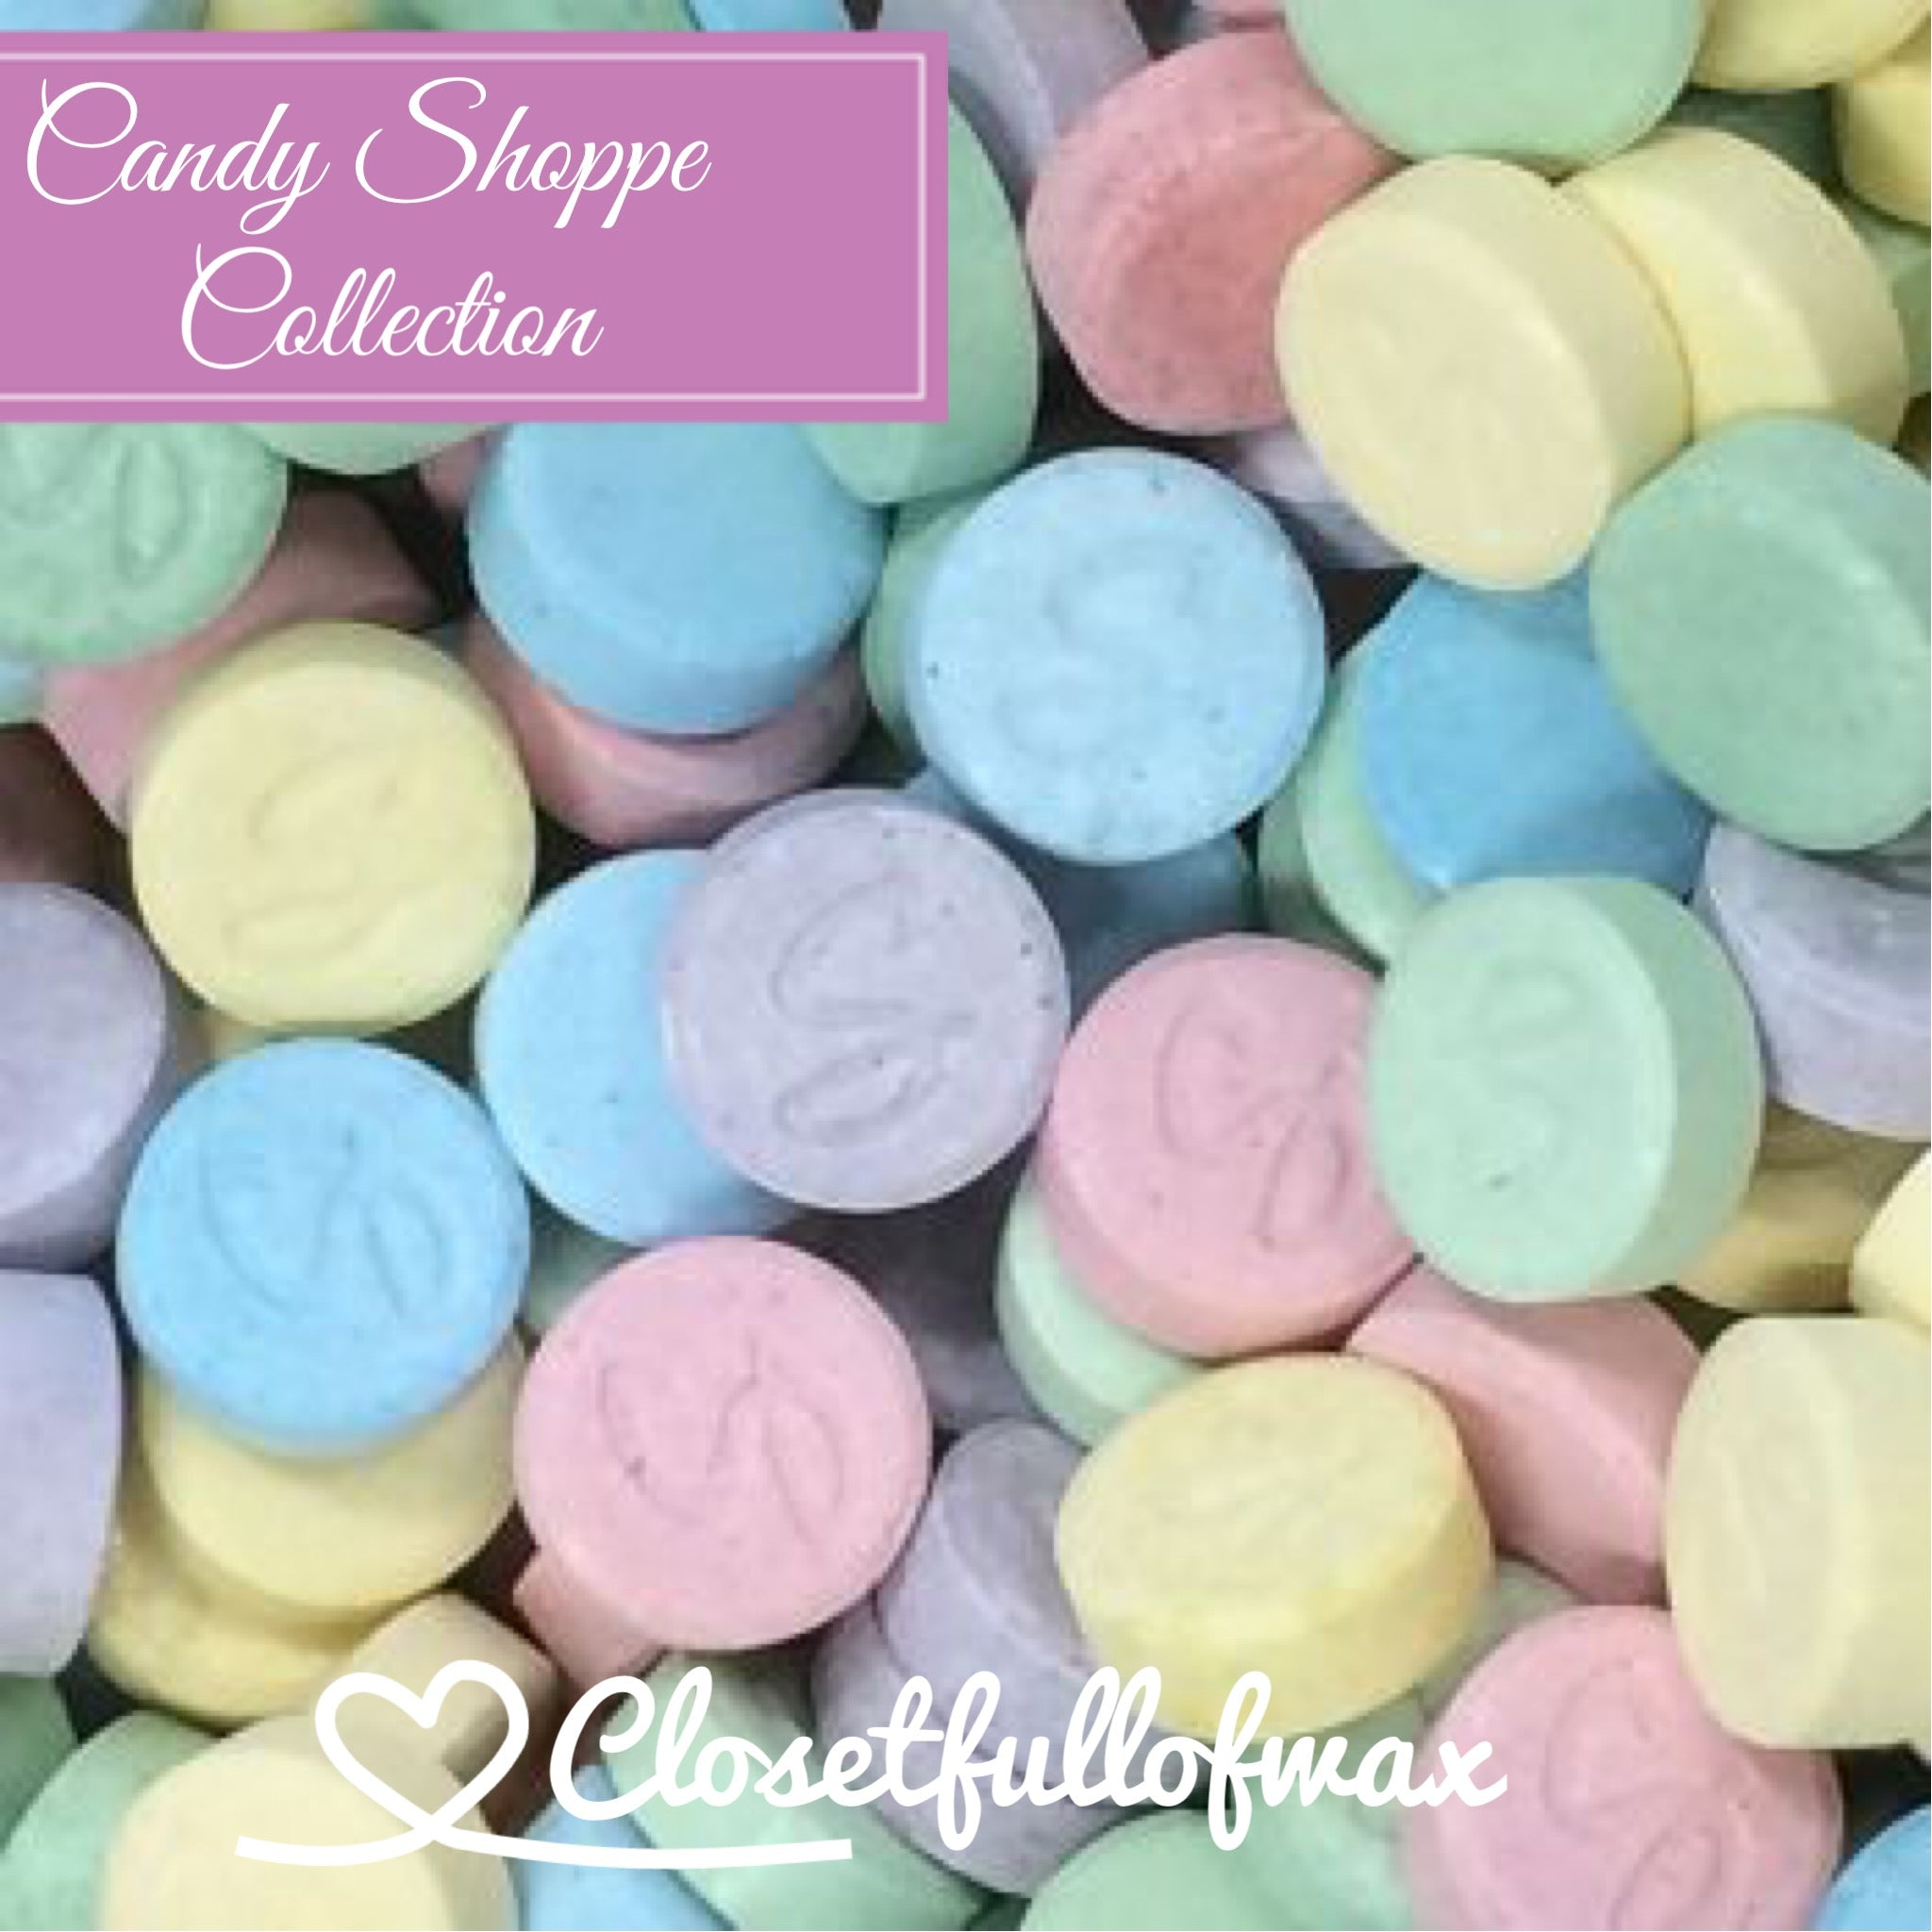 Candy Shoppe Collection - Closet Full of Wax